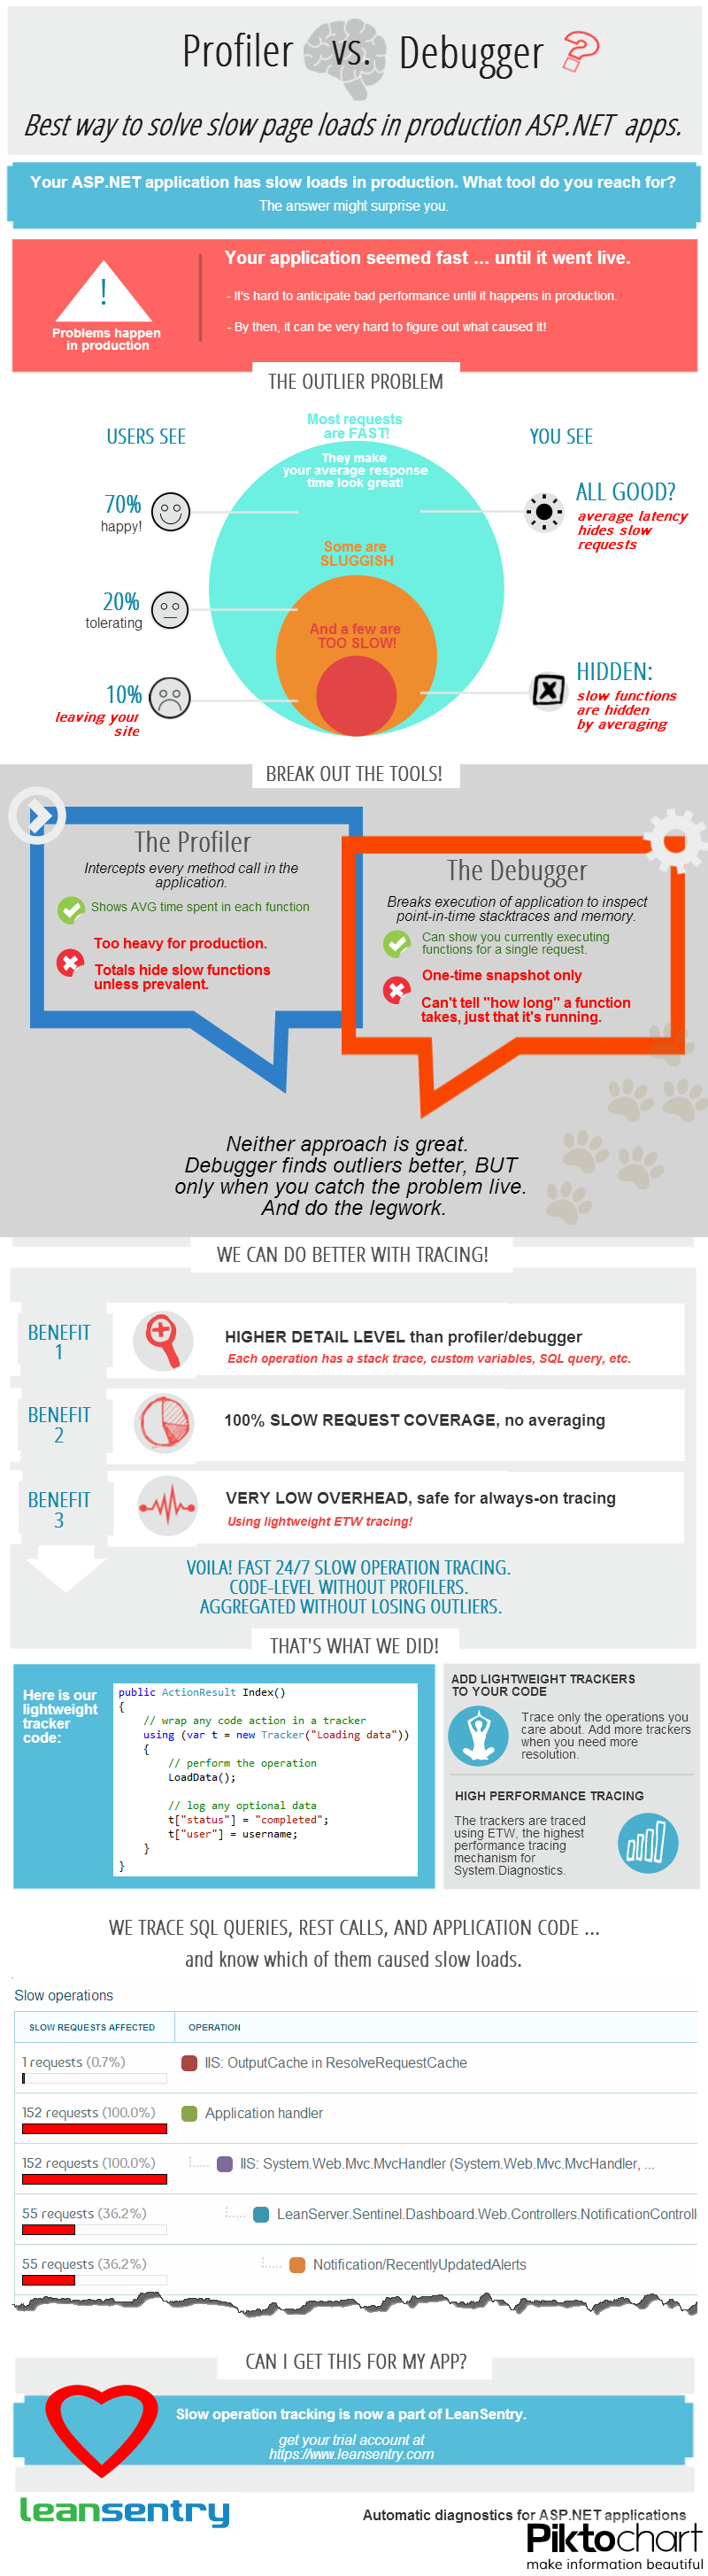 Infographic: Should you use a Profiler or a Debugger to fix slow ASP.NET page loads?